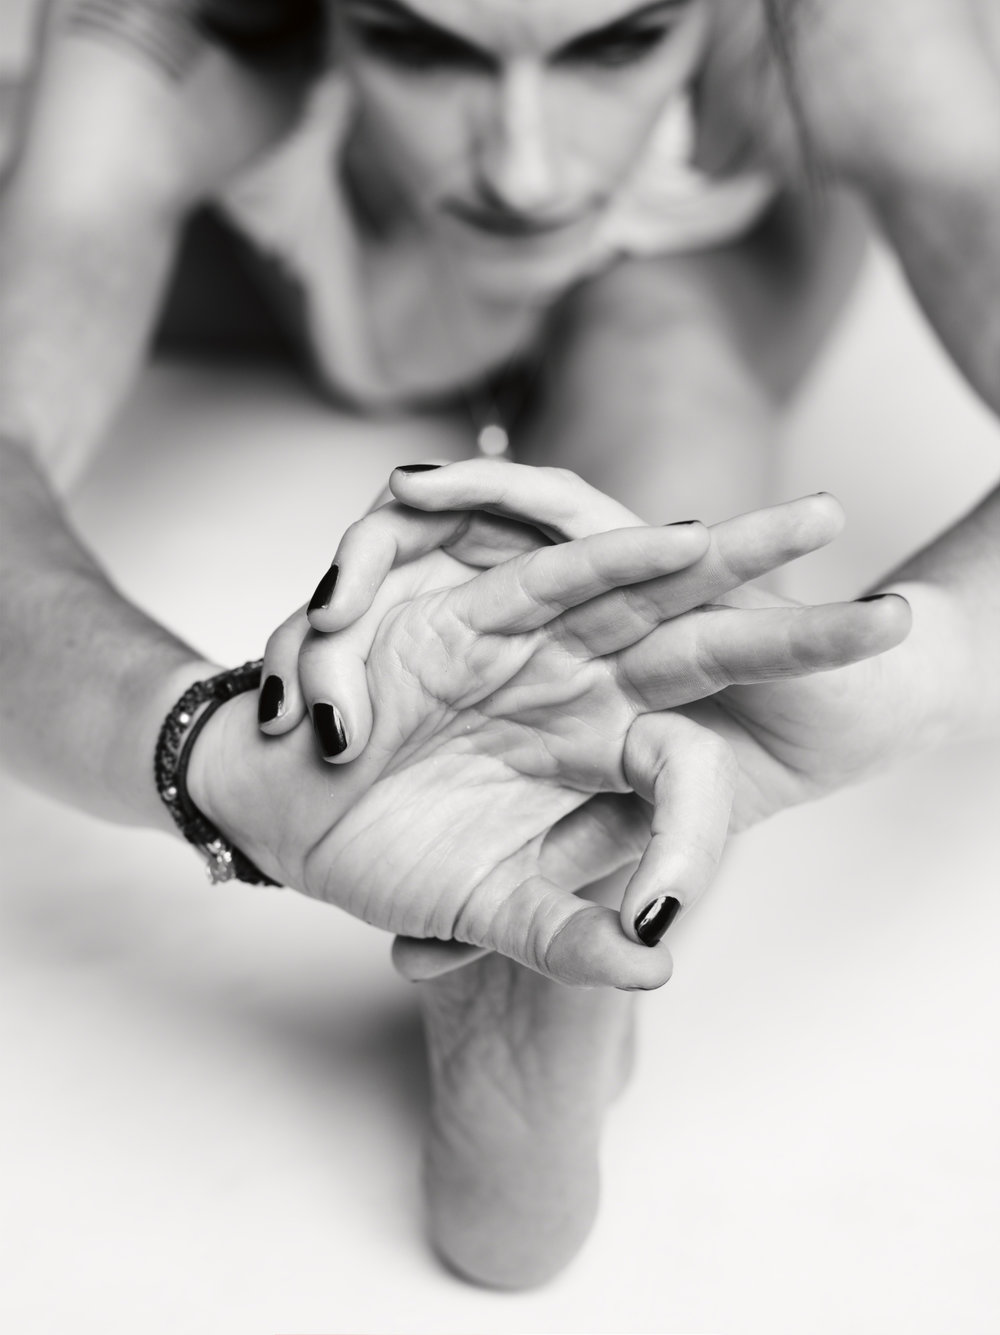 Yoga and religion by Greg Nardi. Mudra and Mala - Kia Naddermier photographed by Jan Welters